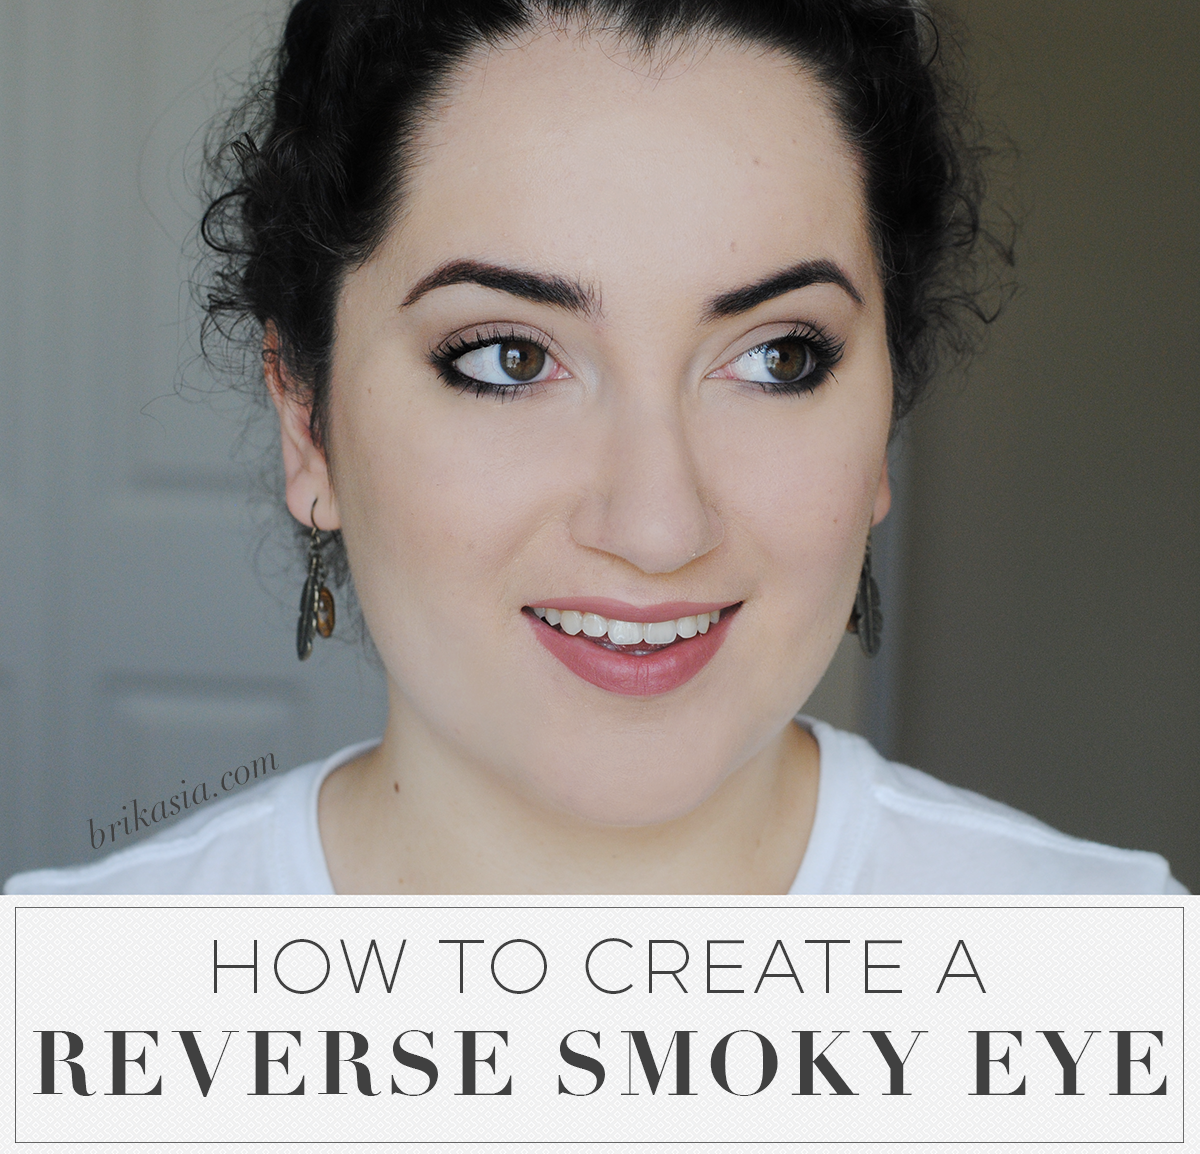 How To Create a Reverse Smoky Eye, smoky eye for hooded eyes